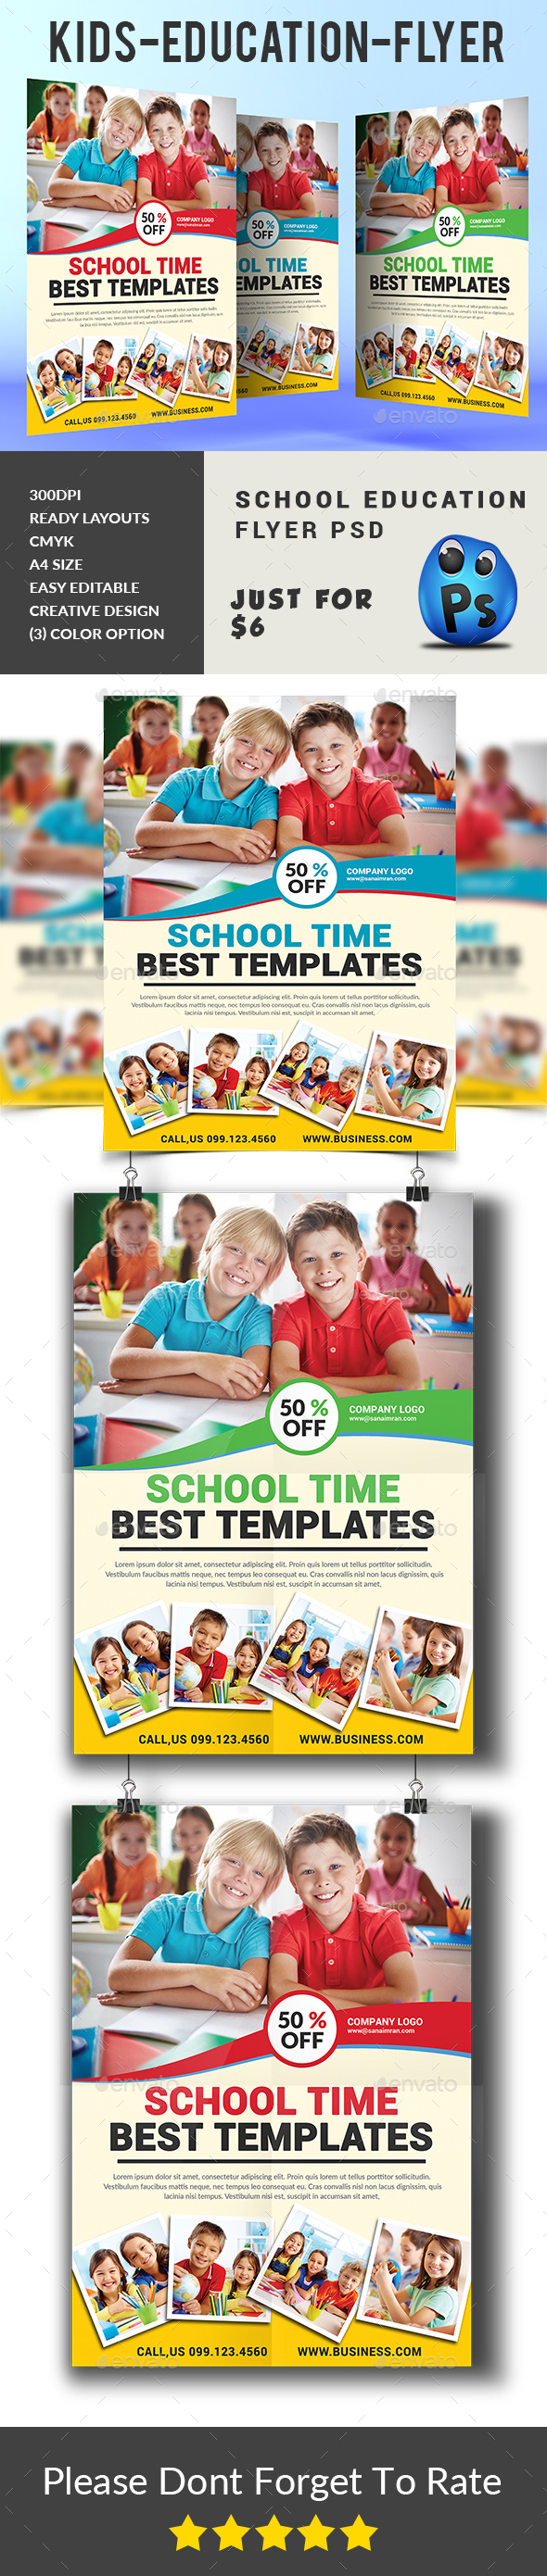 Kids Education Flyer - Corporate Flyers